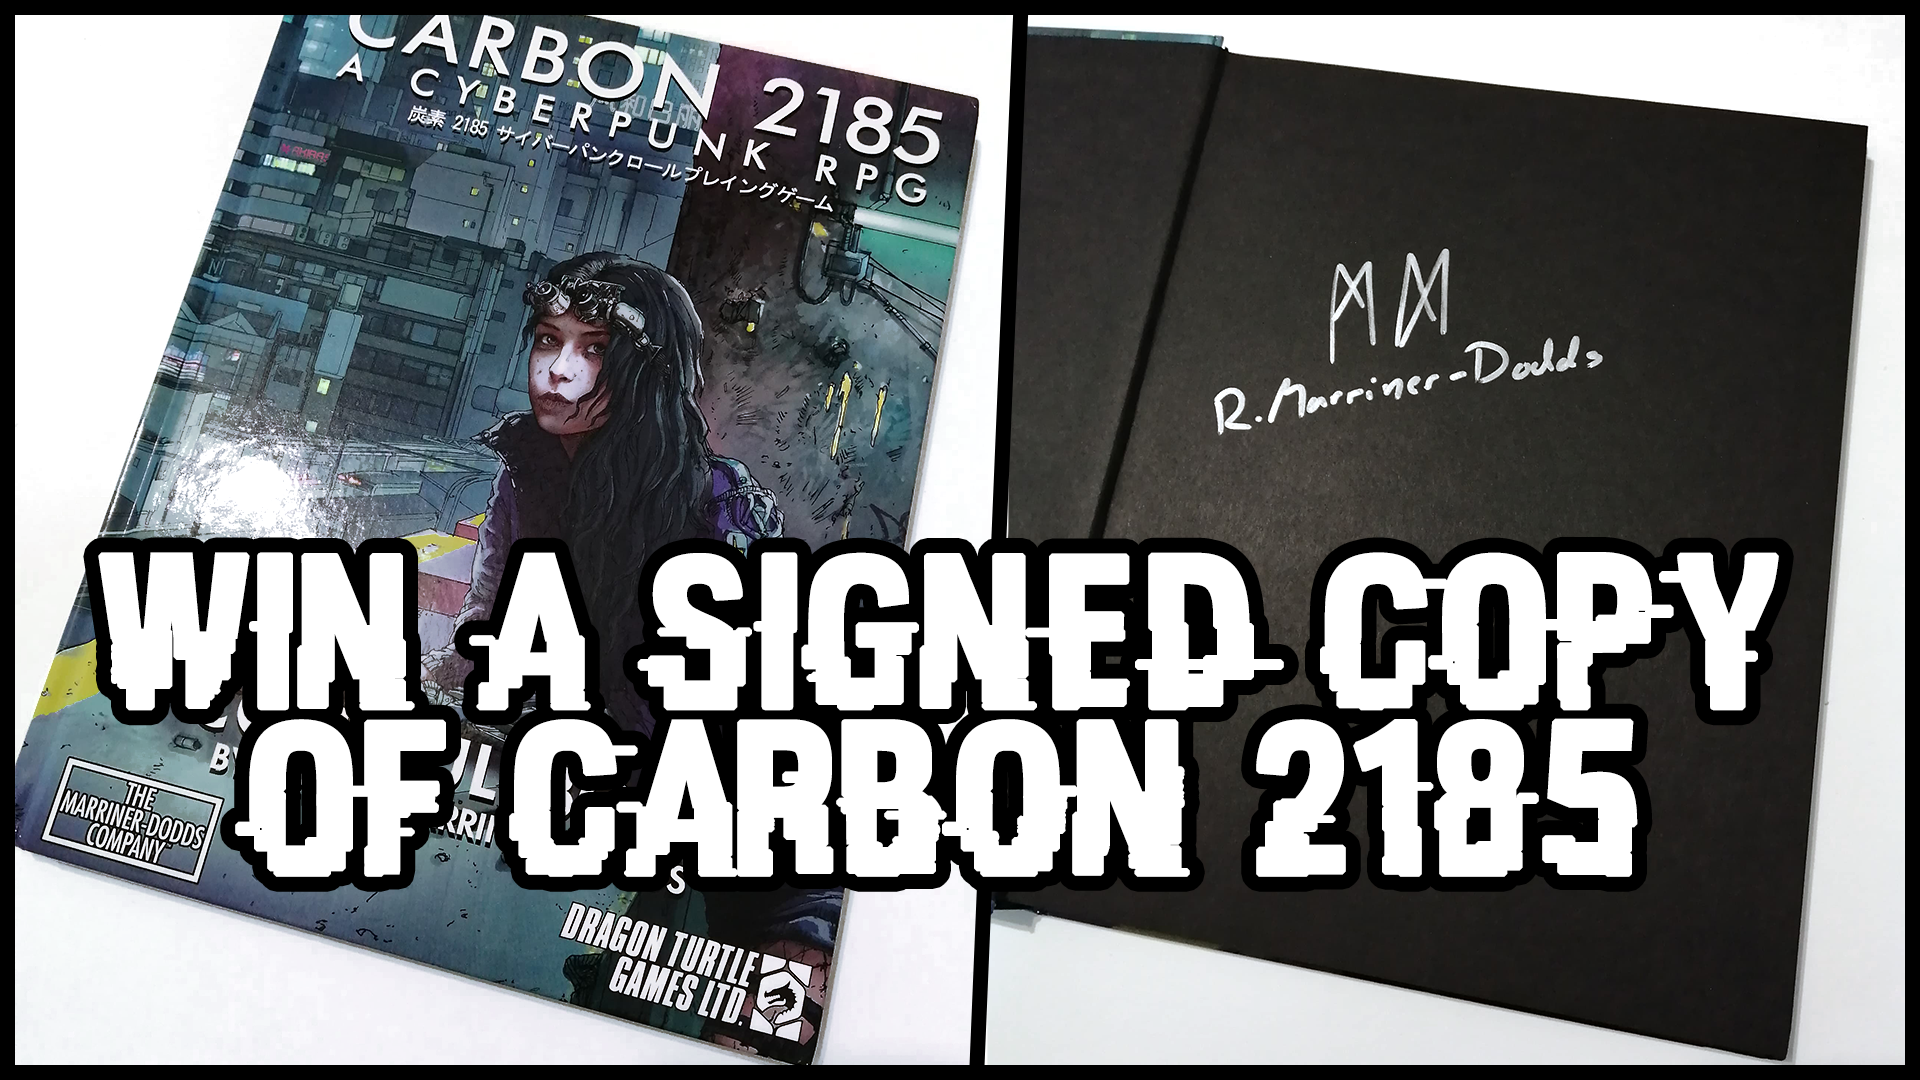 Enter for a chance to win a copy of Carbon 2185 signed by the creator Robert Marriner-Dodds! A high action, modern cyberpunk tabletop roleplaying game set in a dystopian San Francisco! Giveaway Image